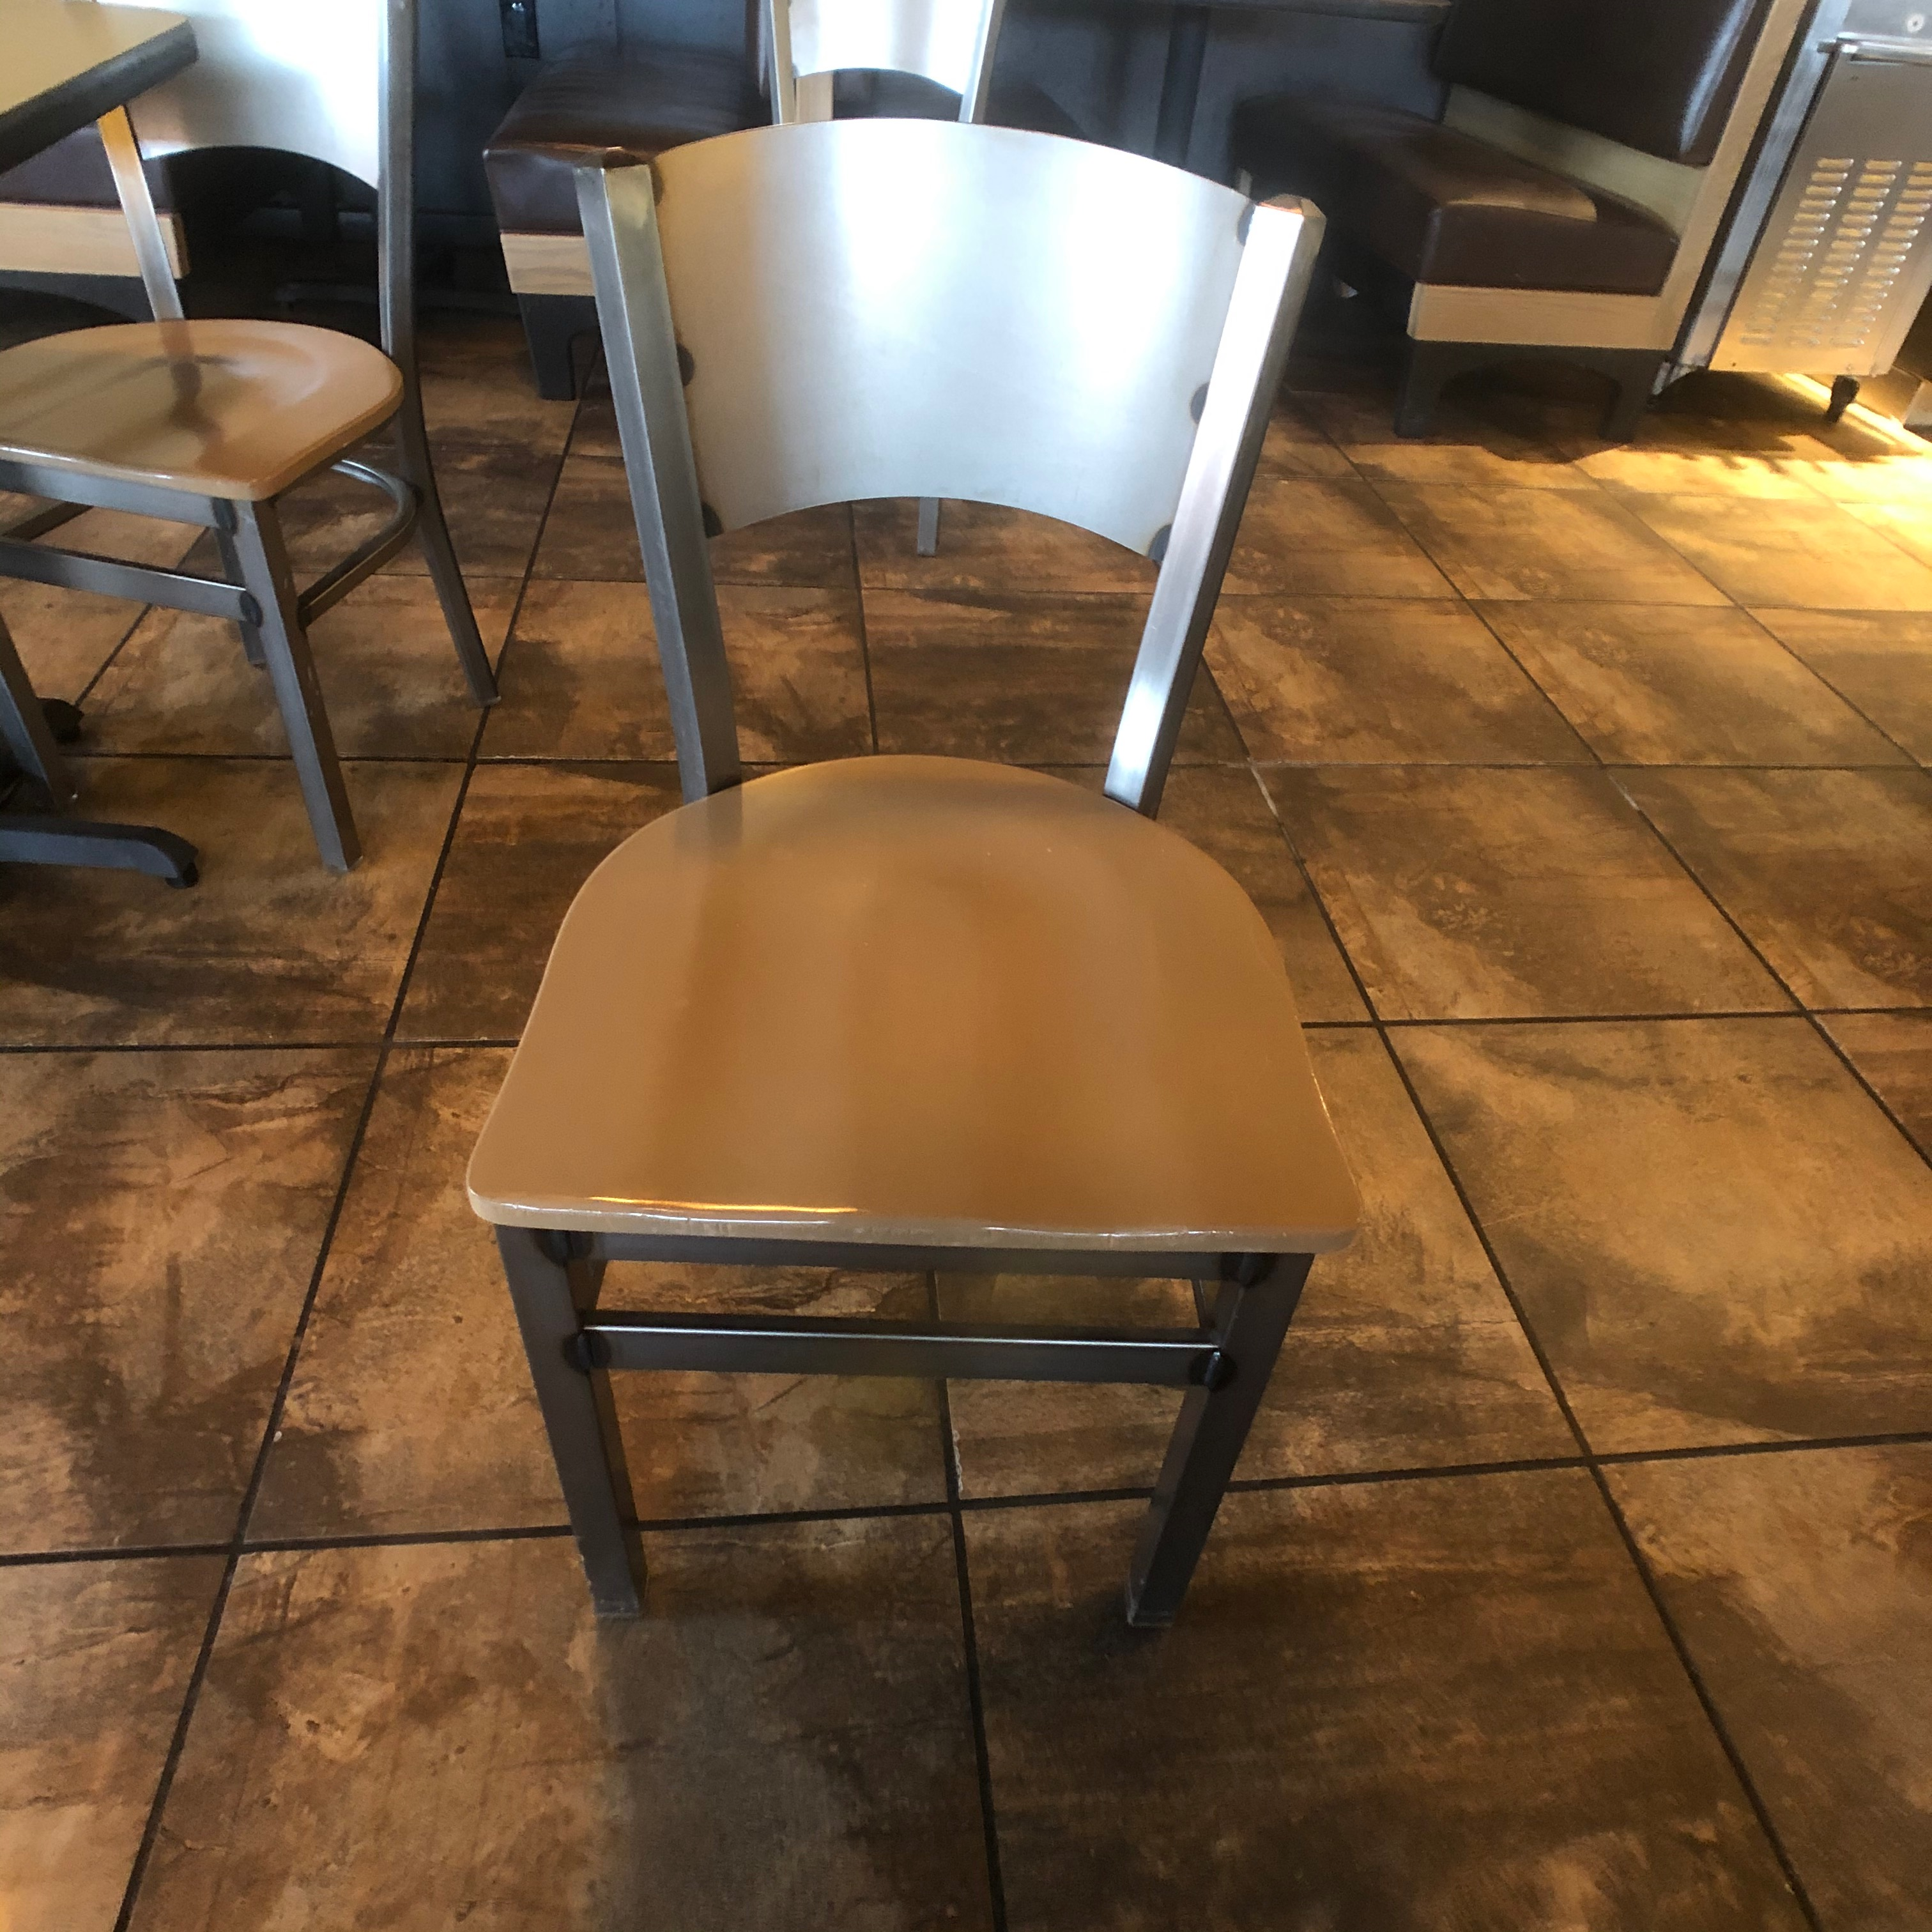 "(10) 2-Person Tables with (20) Walsh Simmons Seating Chairs, Approx. 2'6"" L x 24"" W - Image 4 of 5"